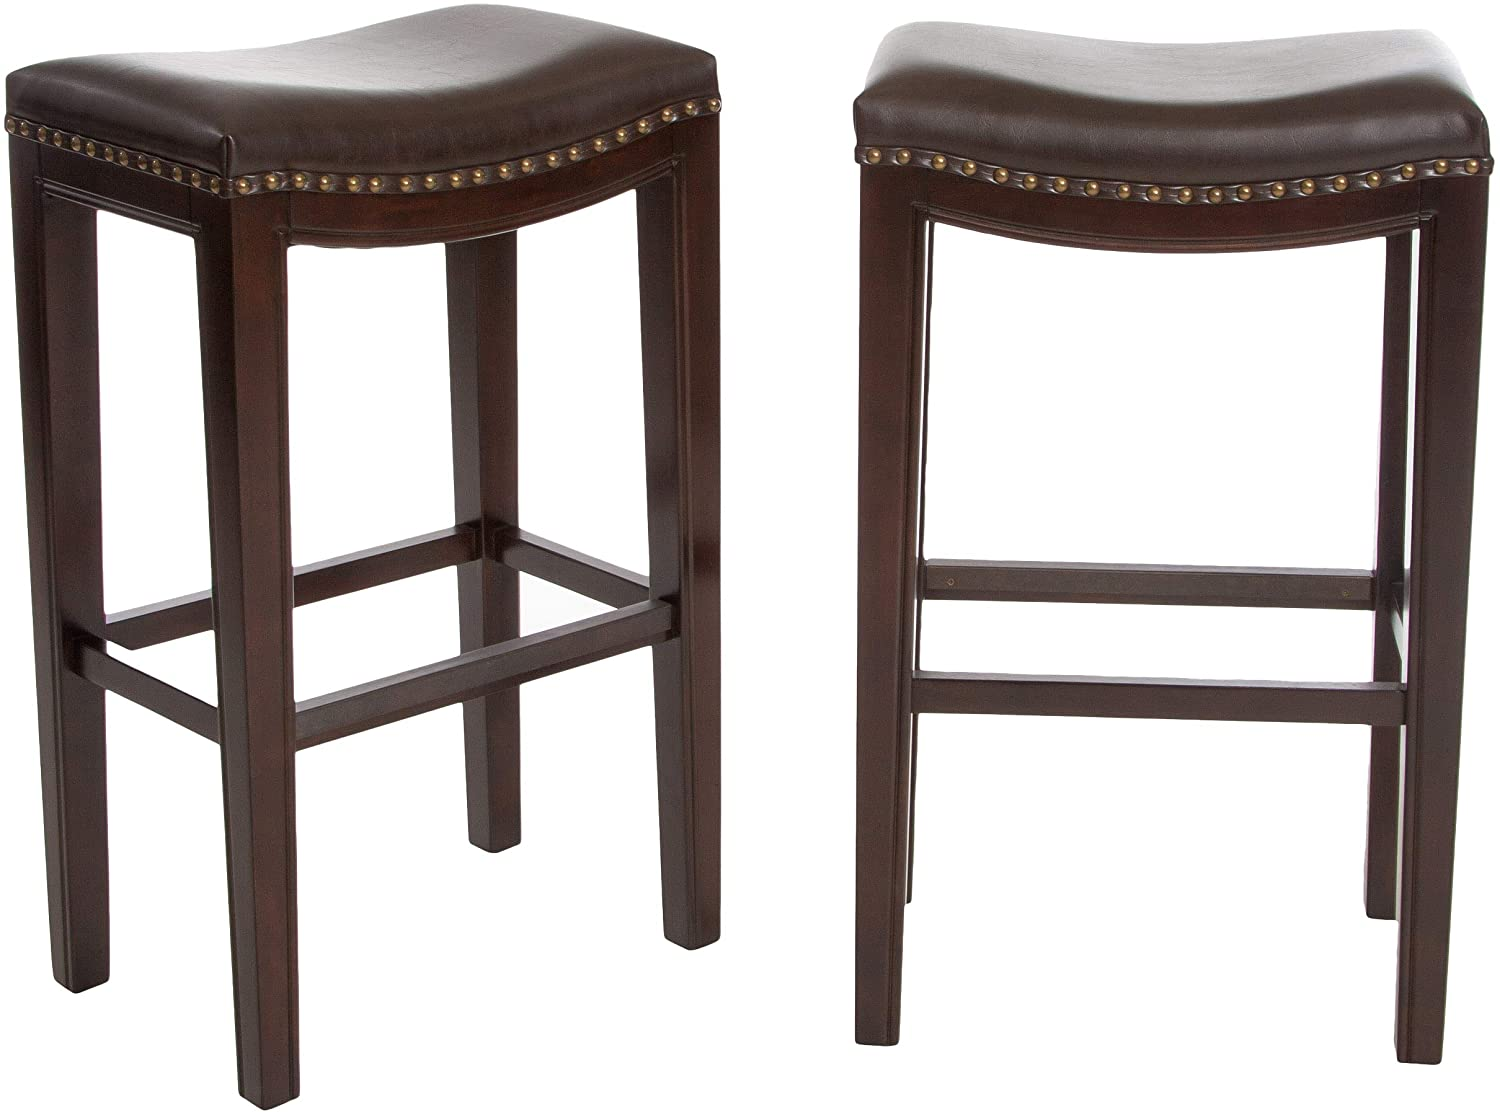 Christopher Knight Home Jaeden Backless Faux Leather Bar Stools with Brass Nailhead Studs, Set of 2